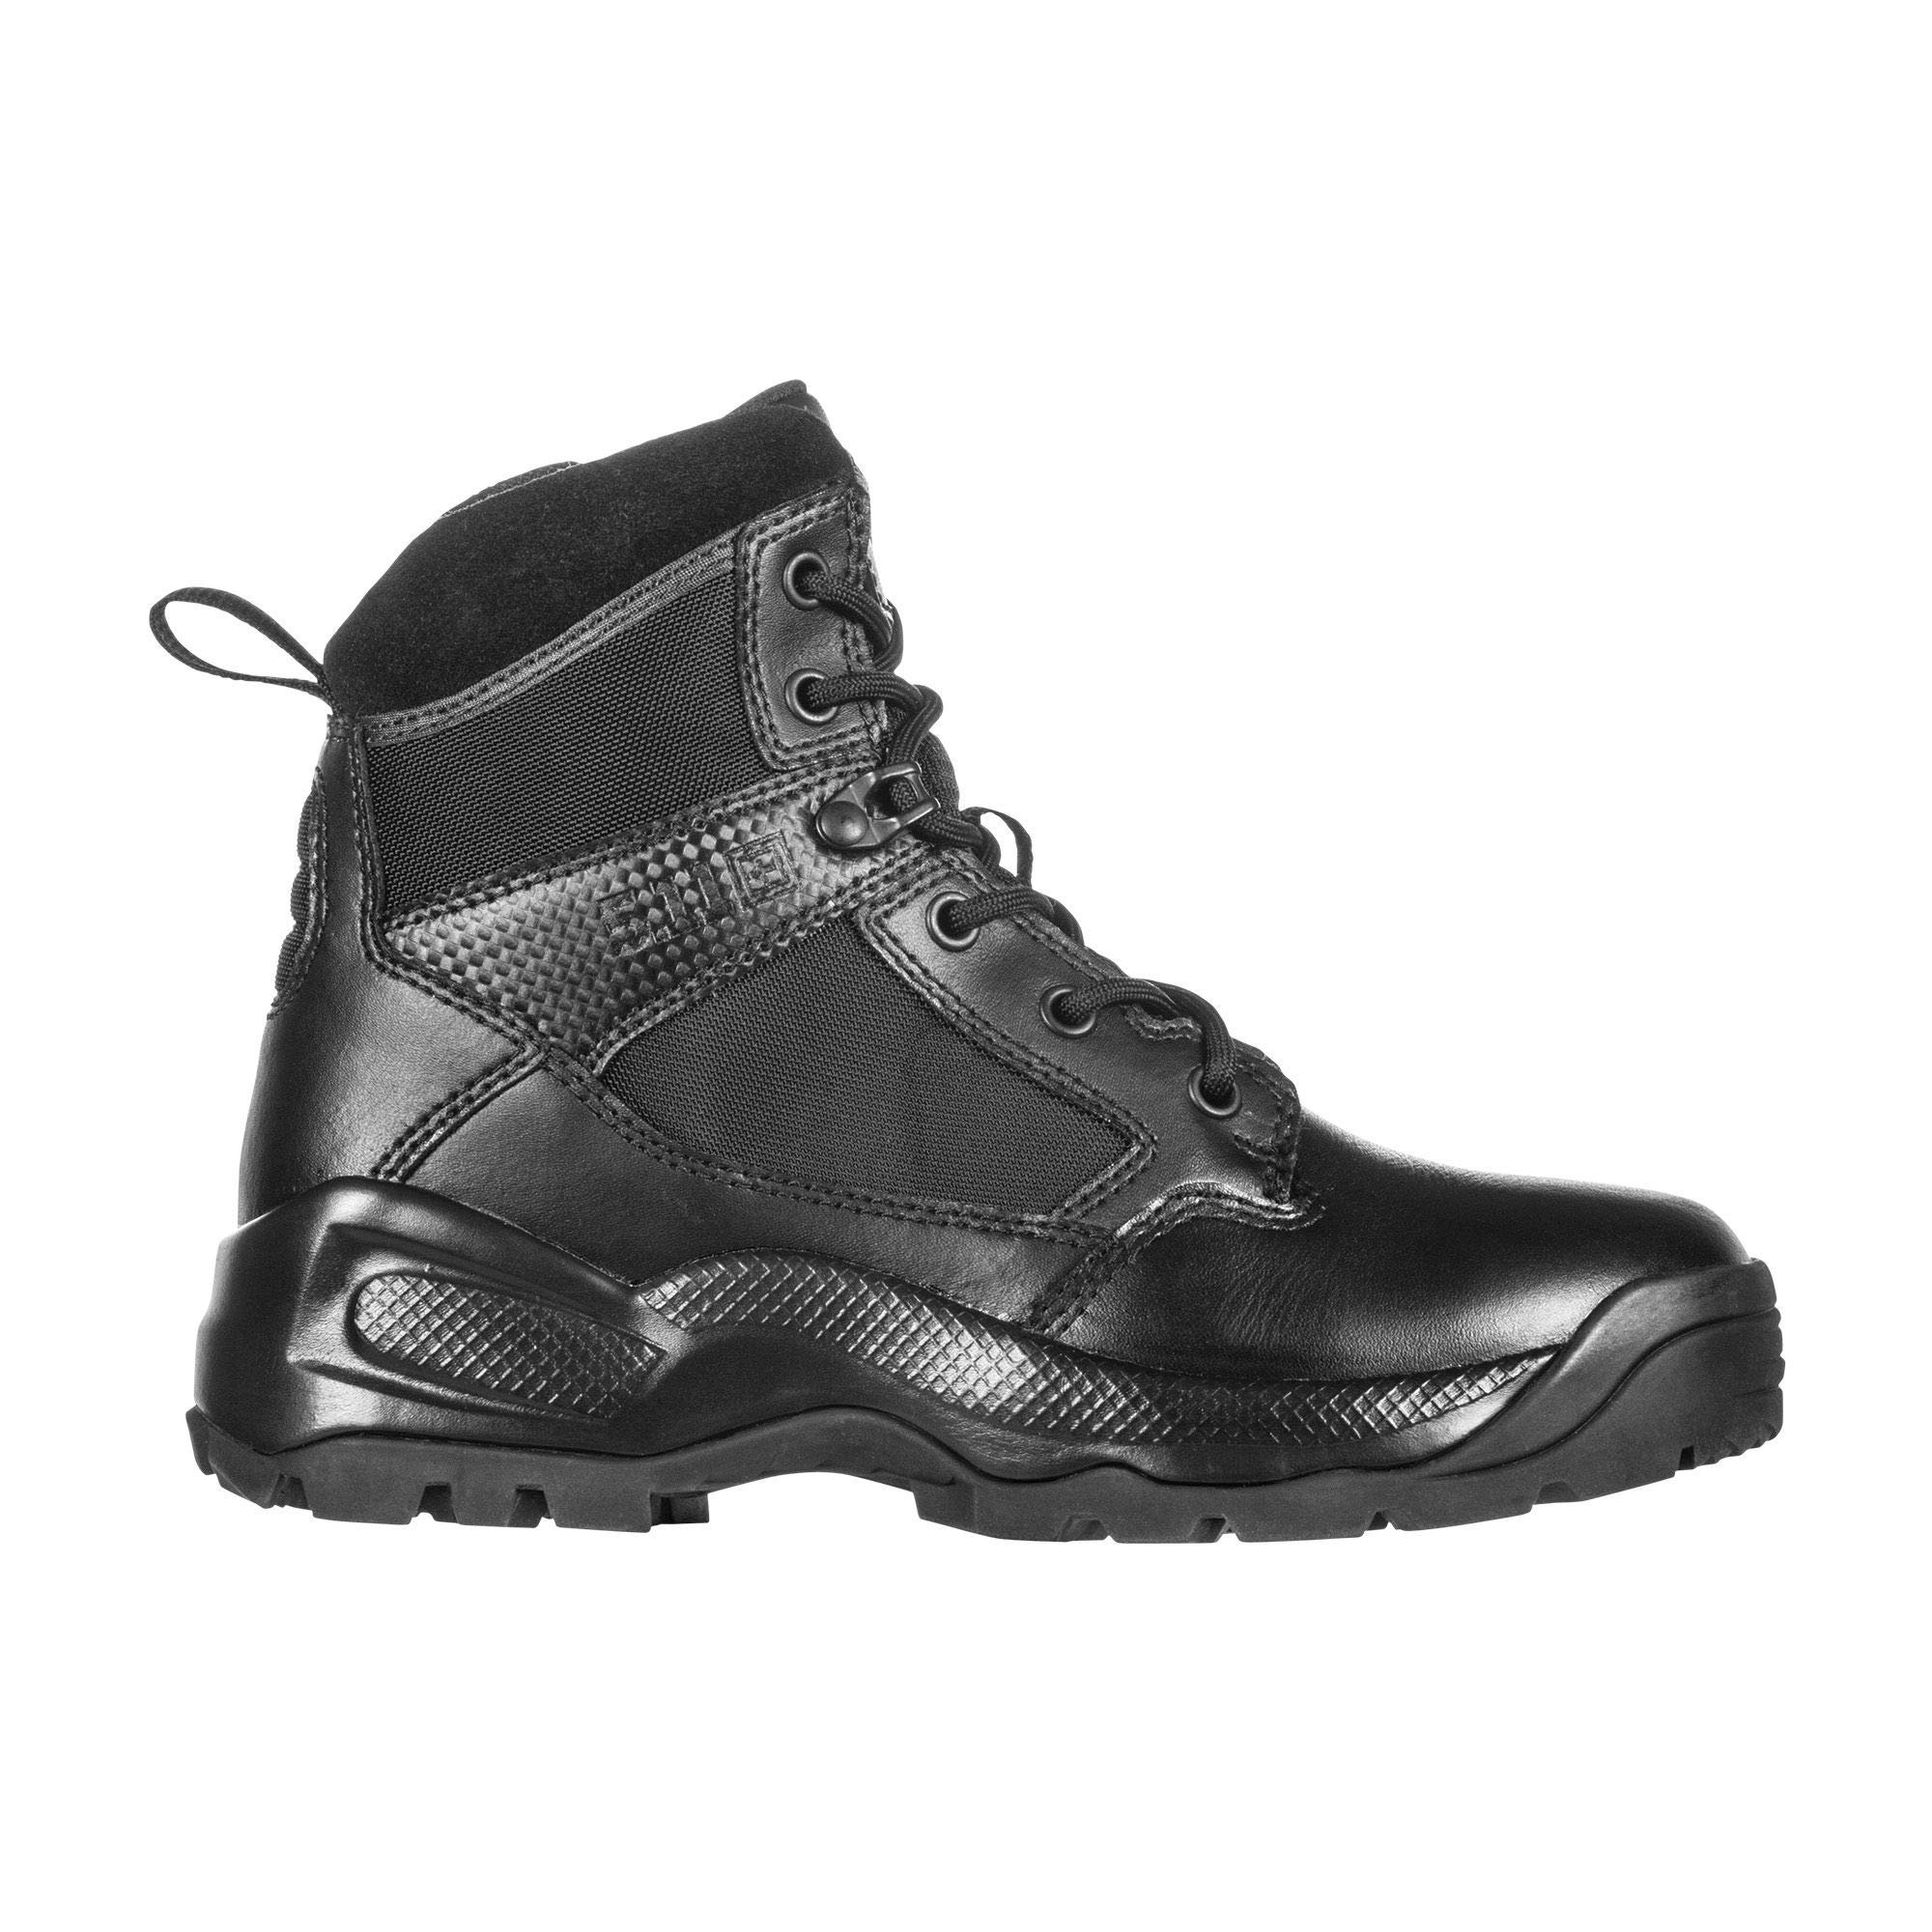 5.11 Women's ATAC 2.0 6'' Tactical Side Zip Military Combat Boot, Style 12404, Black, 5 D(M) US by 5.11